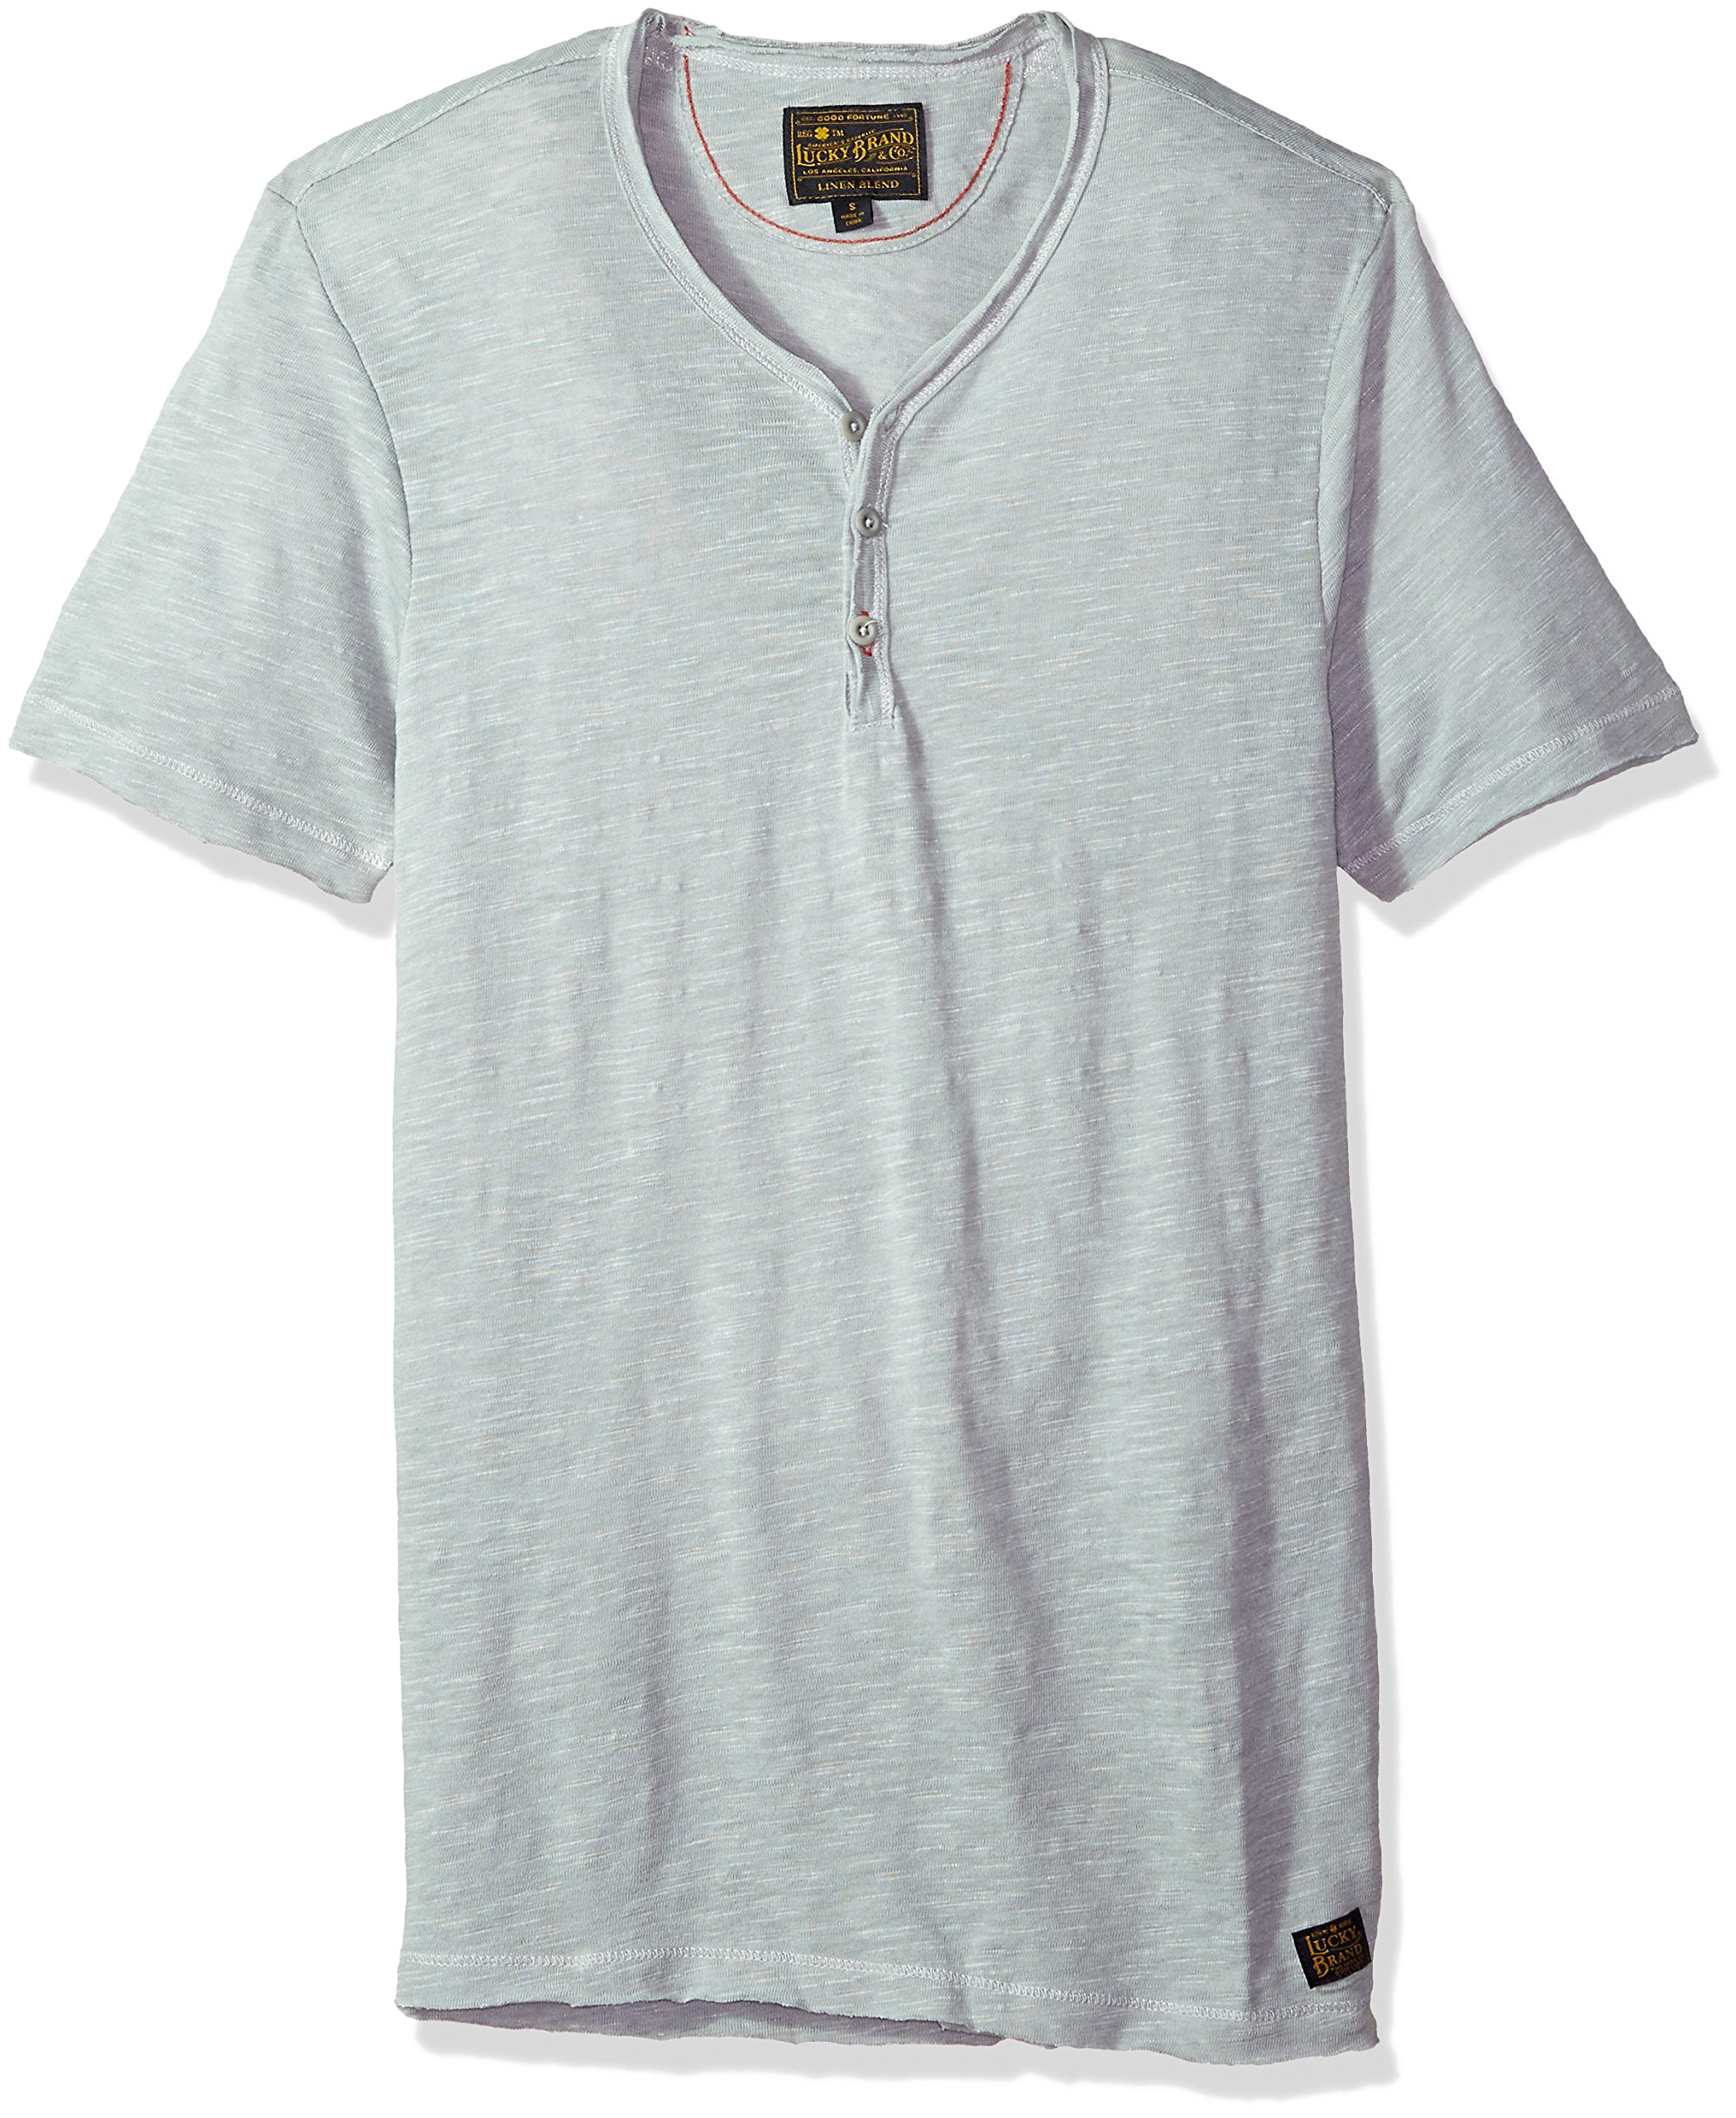 Lucky Brand Men's Raw Edge Y Neck Henley Shirt, Quary, M